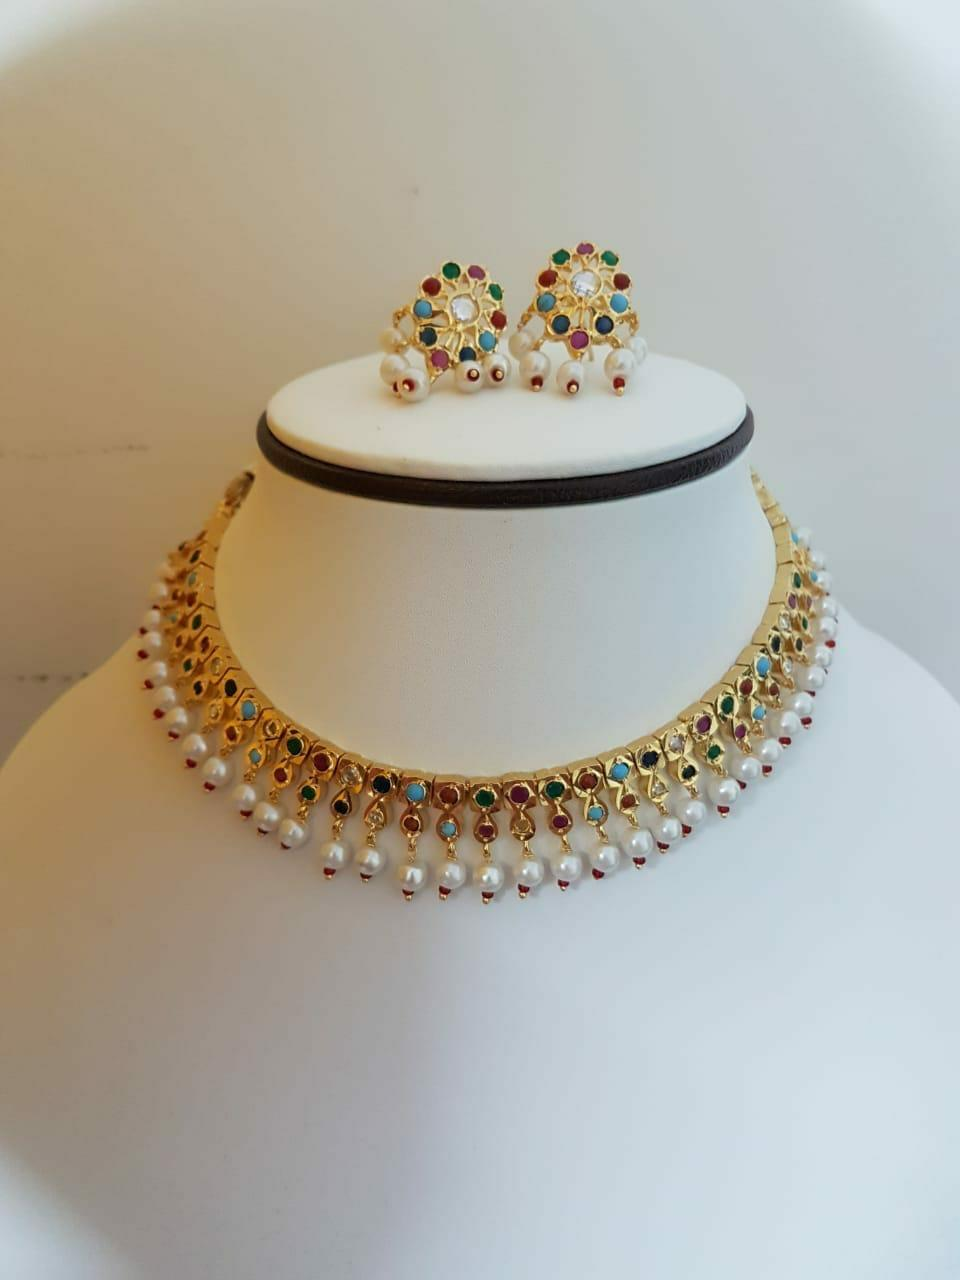 Hyderabadi Designer Gold Plated Jewellery Necklace and Earrings